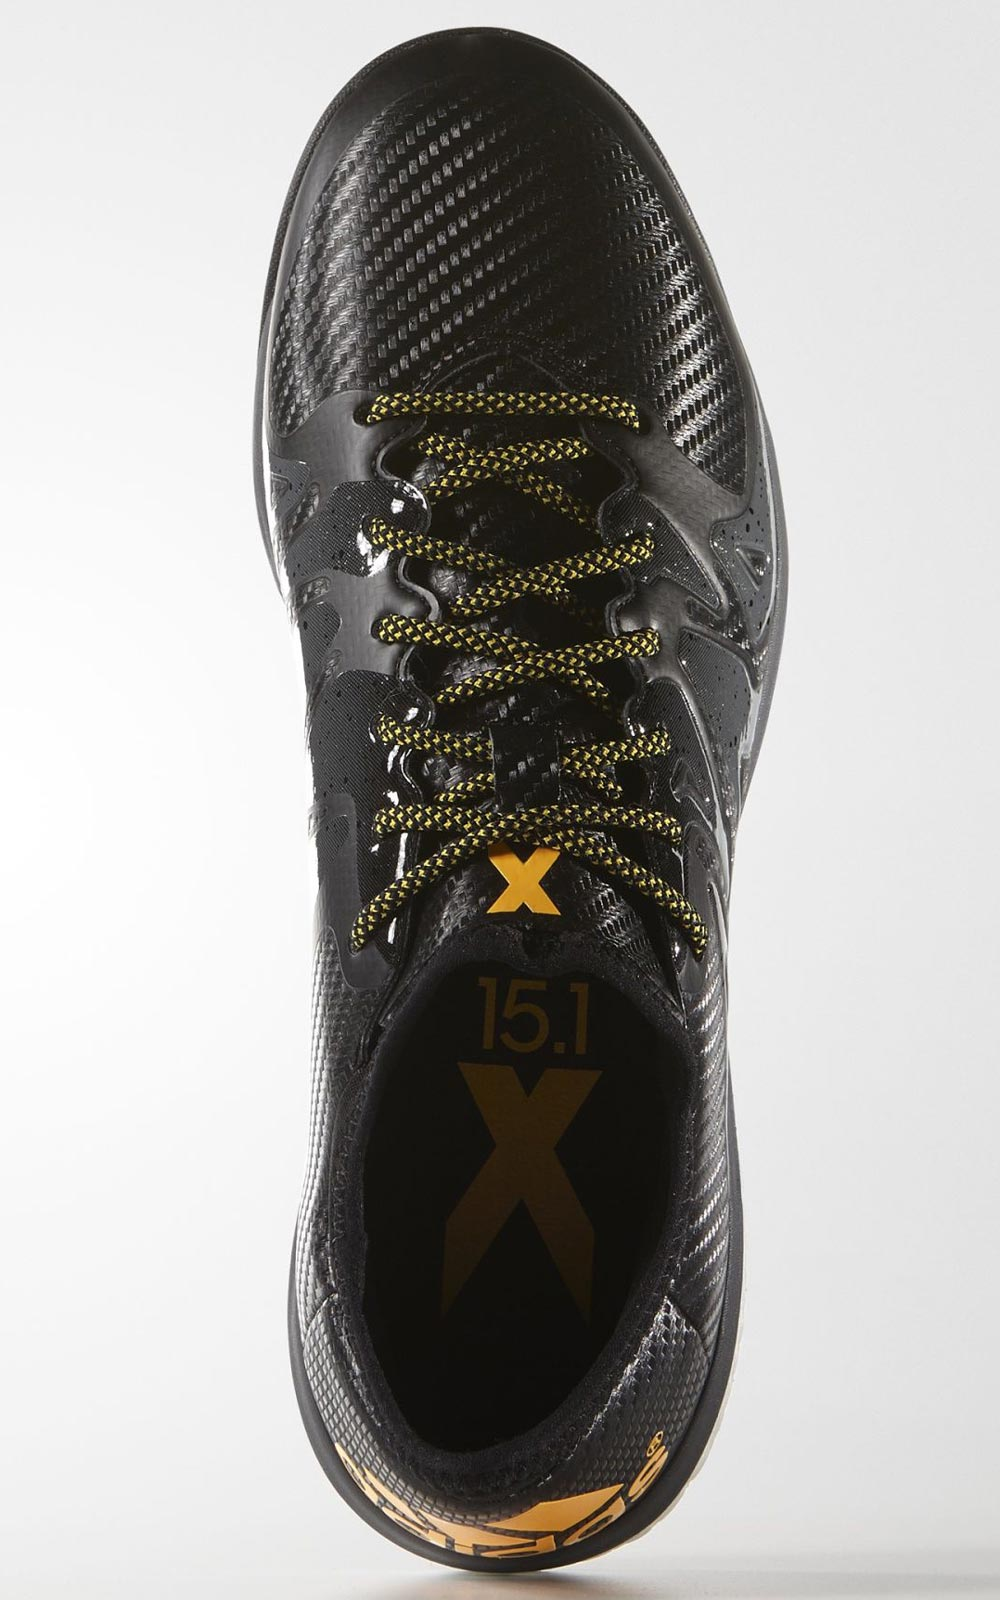 bb38734e2 Classic Adidas X 15.1 Street Limited Shoes Released - Footy Headlines